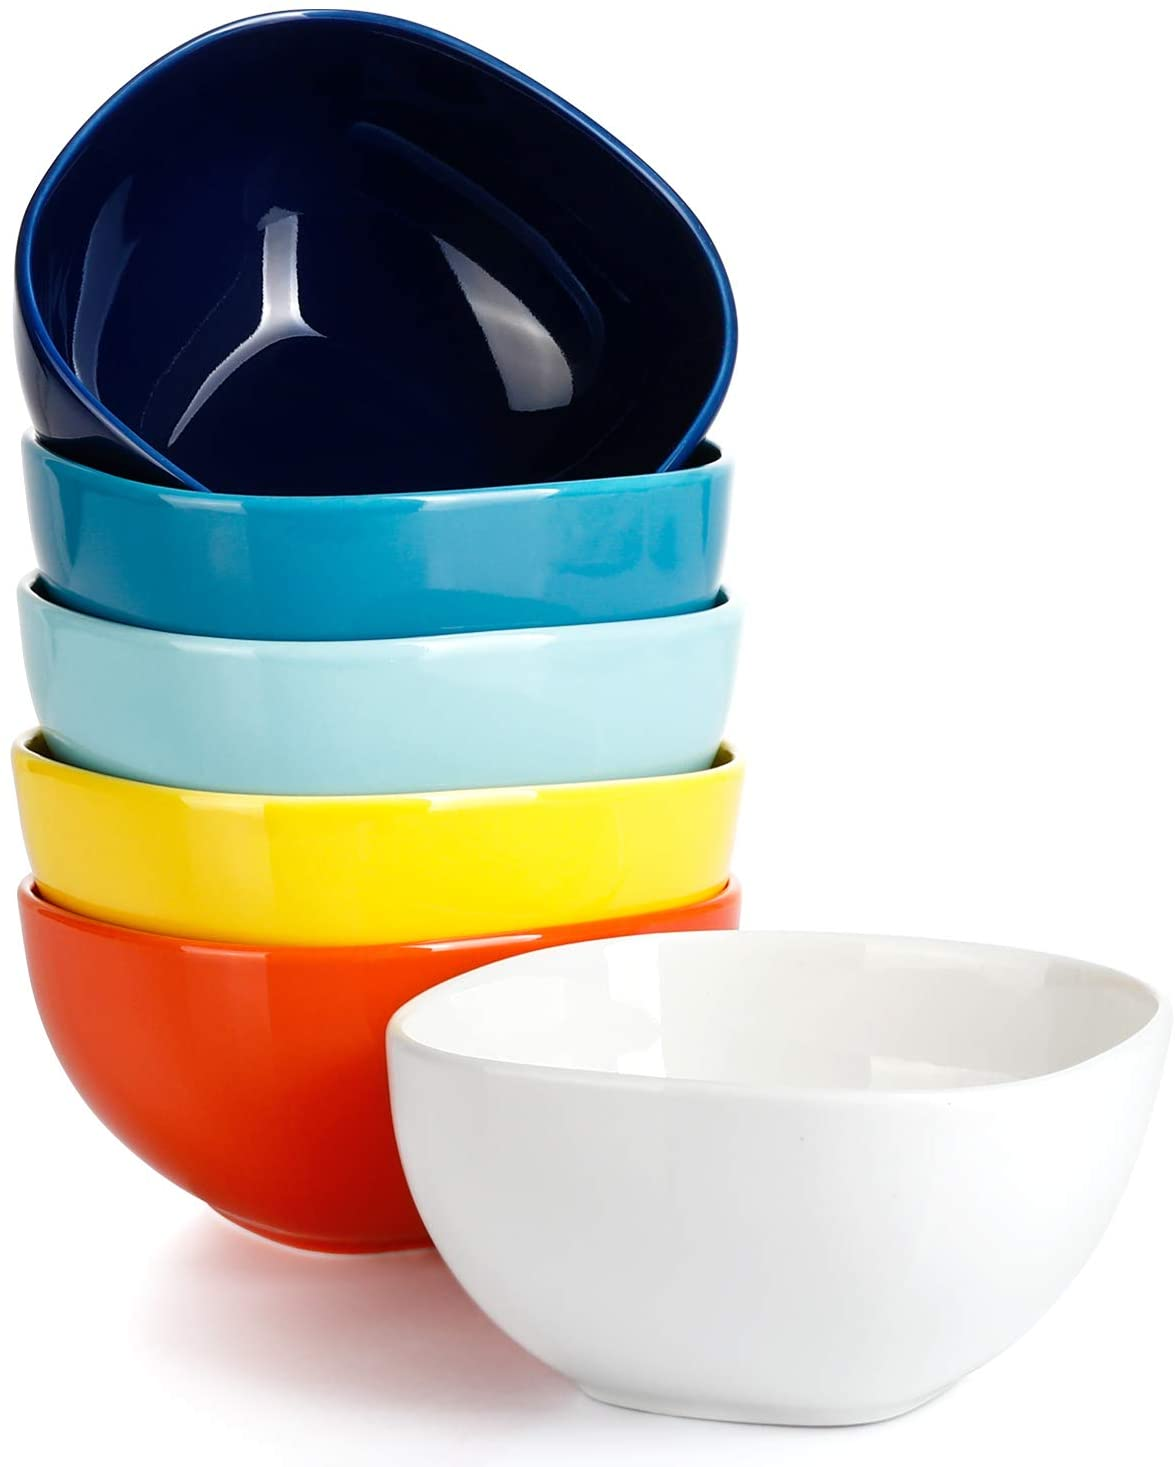 Sweese 110.002 Porcelain Square Bowl Set - 14 Ounce for Cereal, Soup and Fruit - Set of 6, Hot Assorted Colors